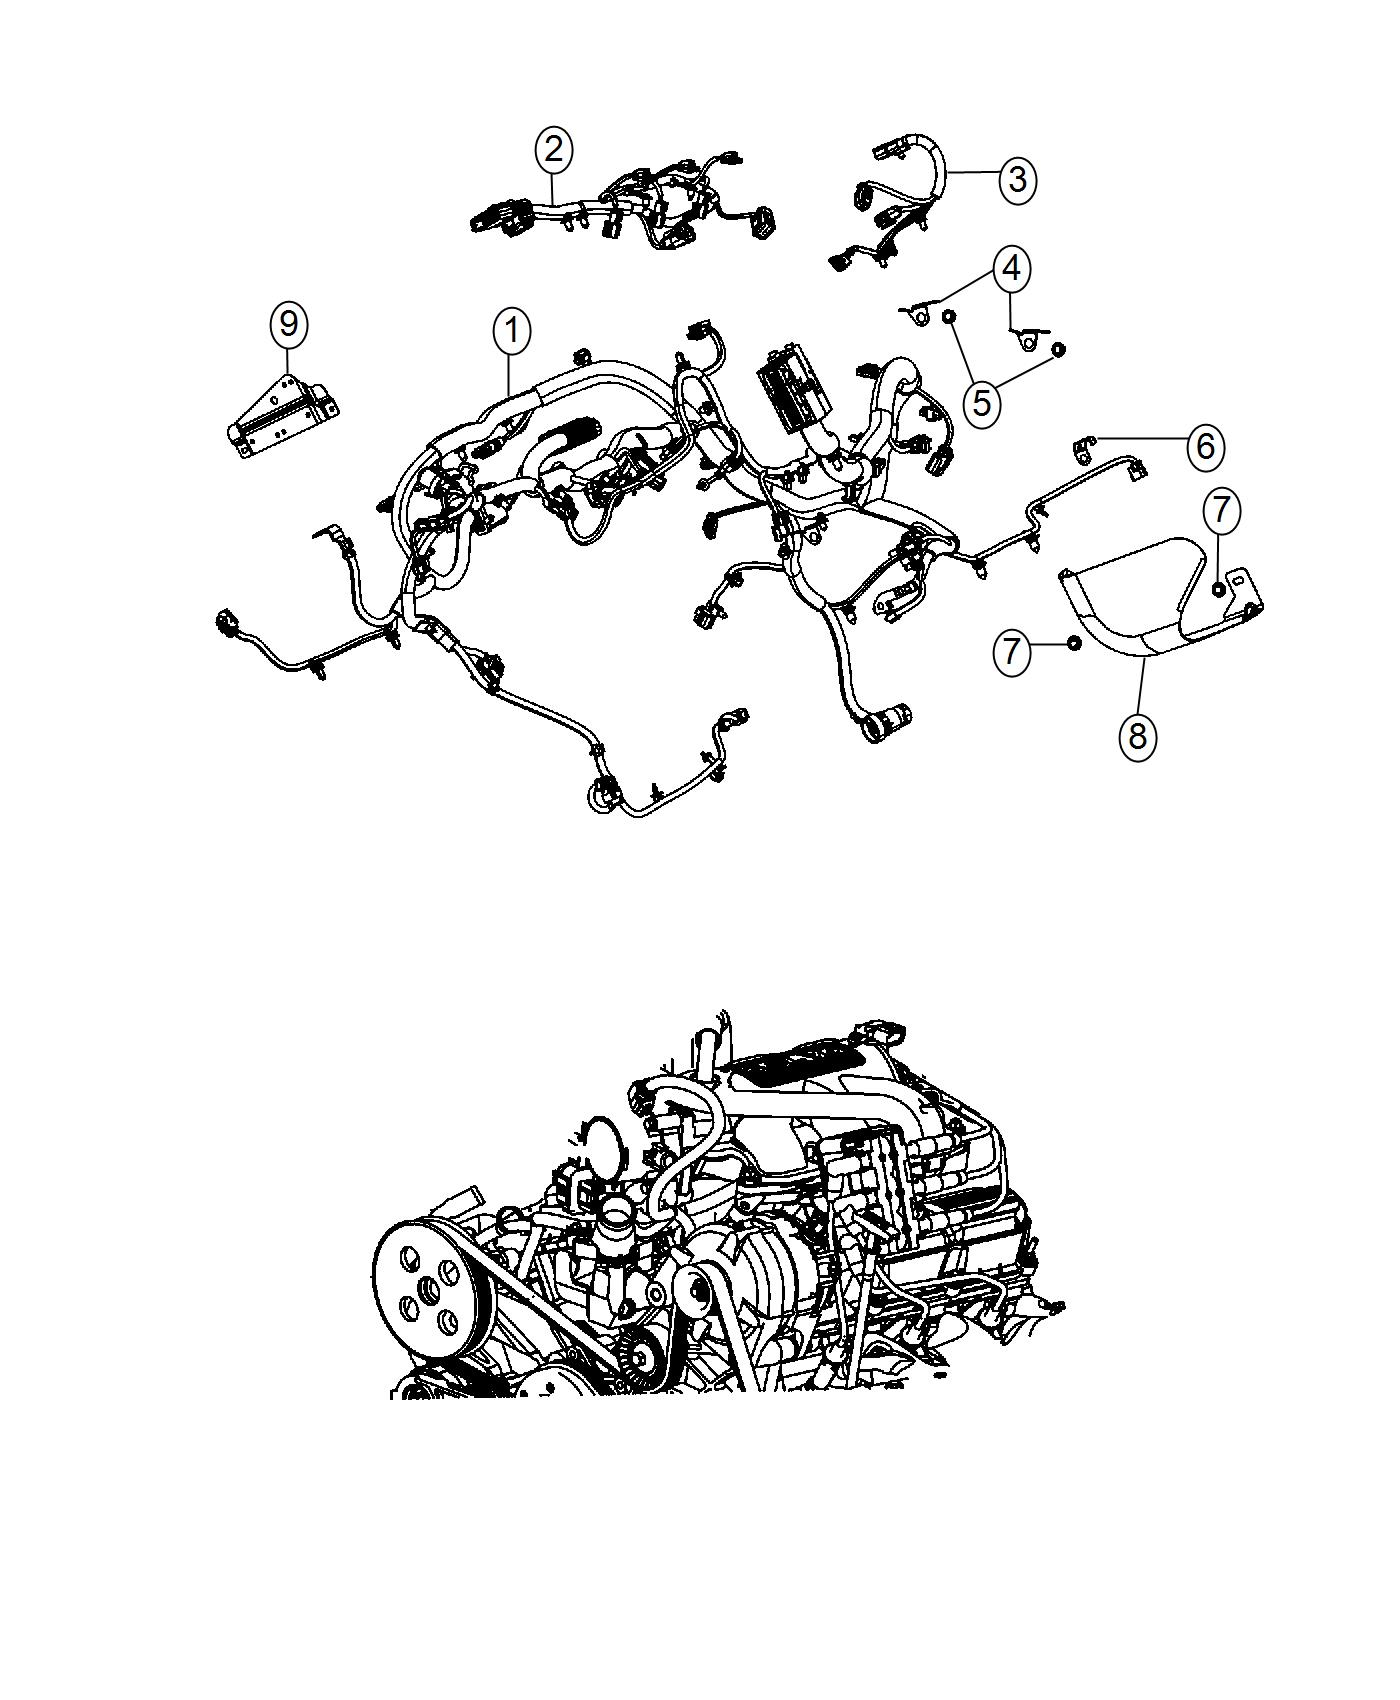 Jeep Wrangler Wiring Engine Complete Chassis Parts